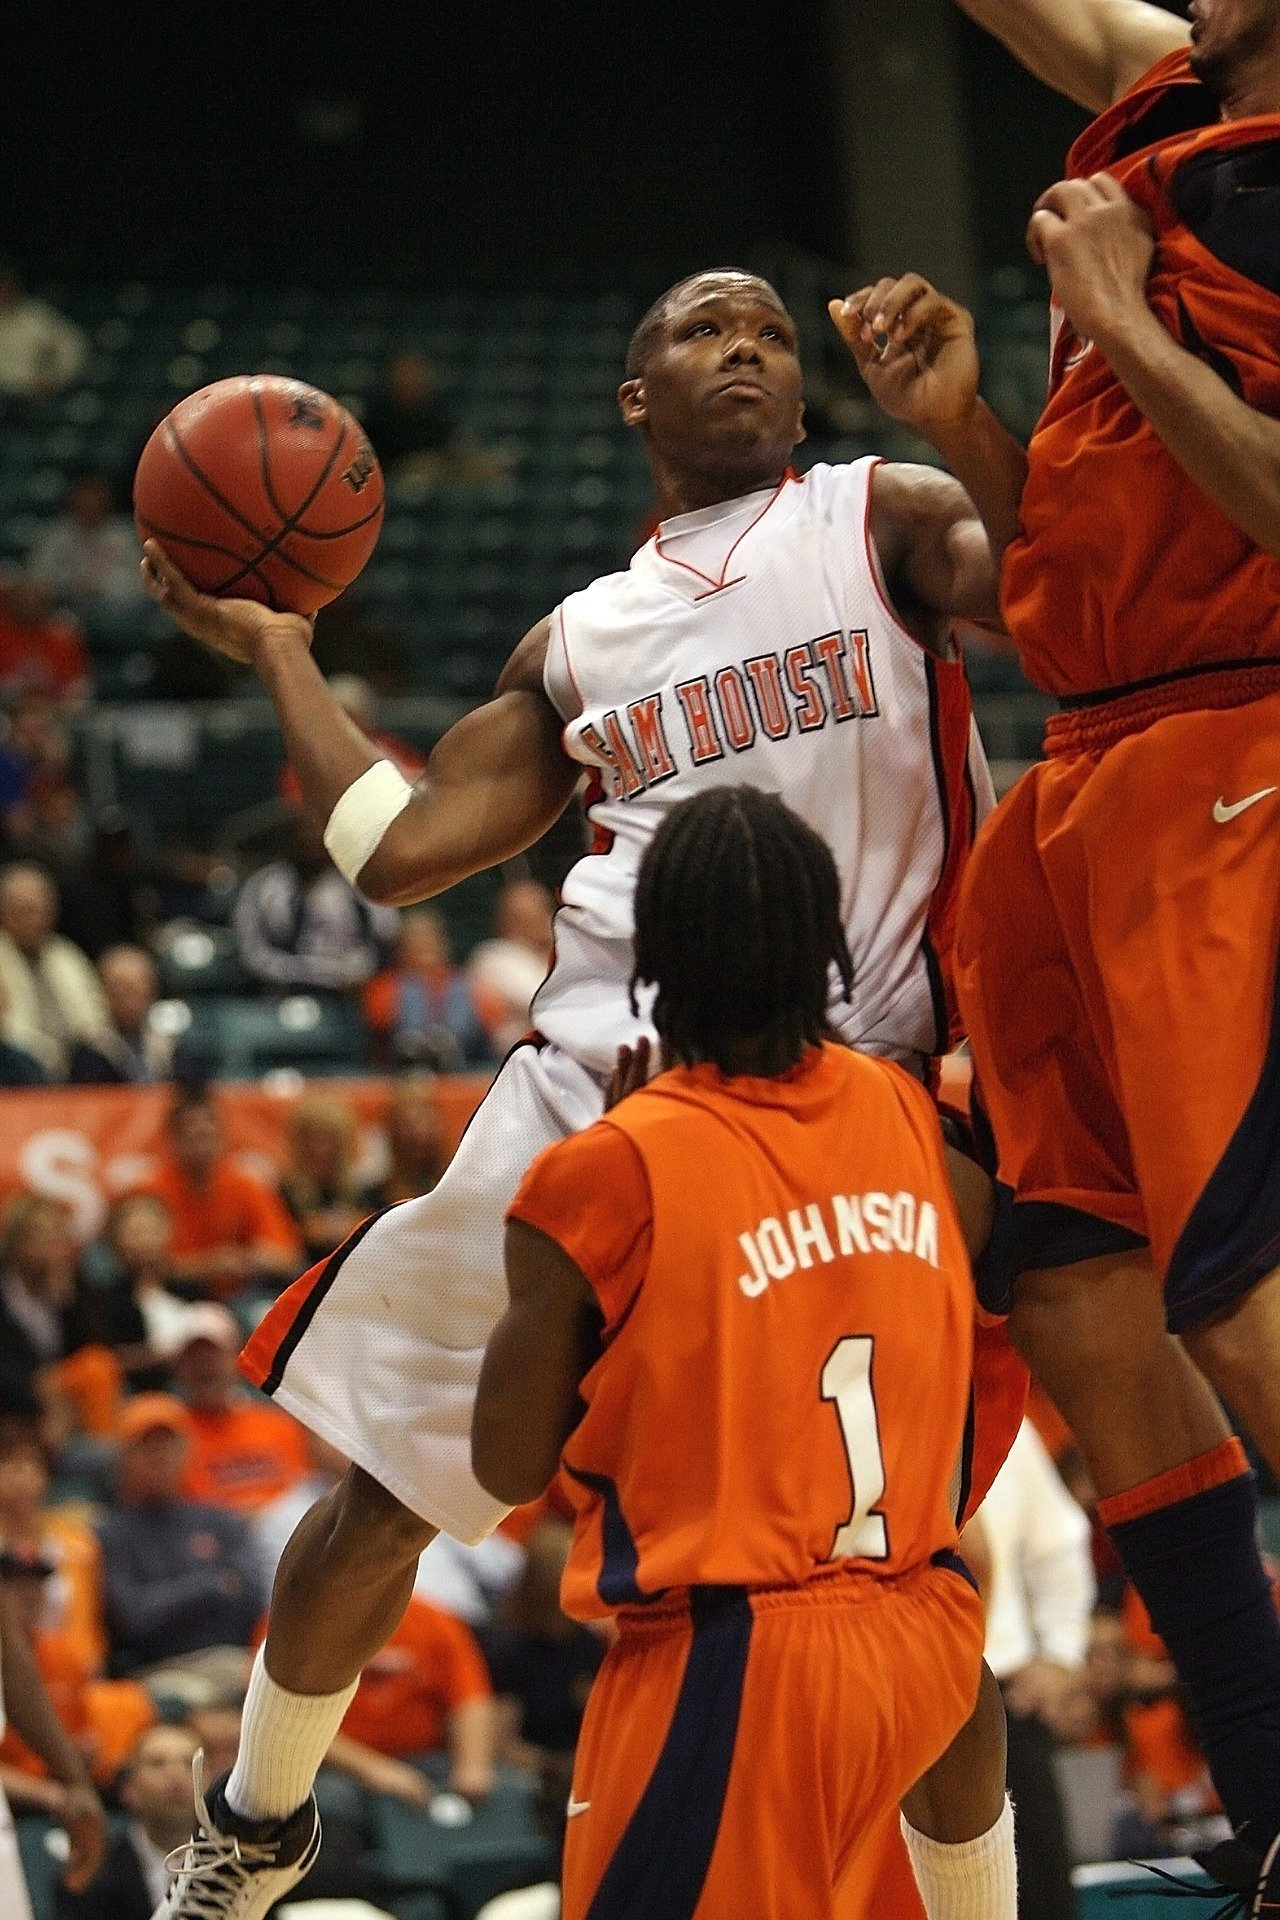 Today's Top NCAAB Picks - Guaranteed NCAAB Sports Picks